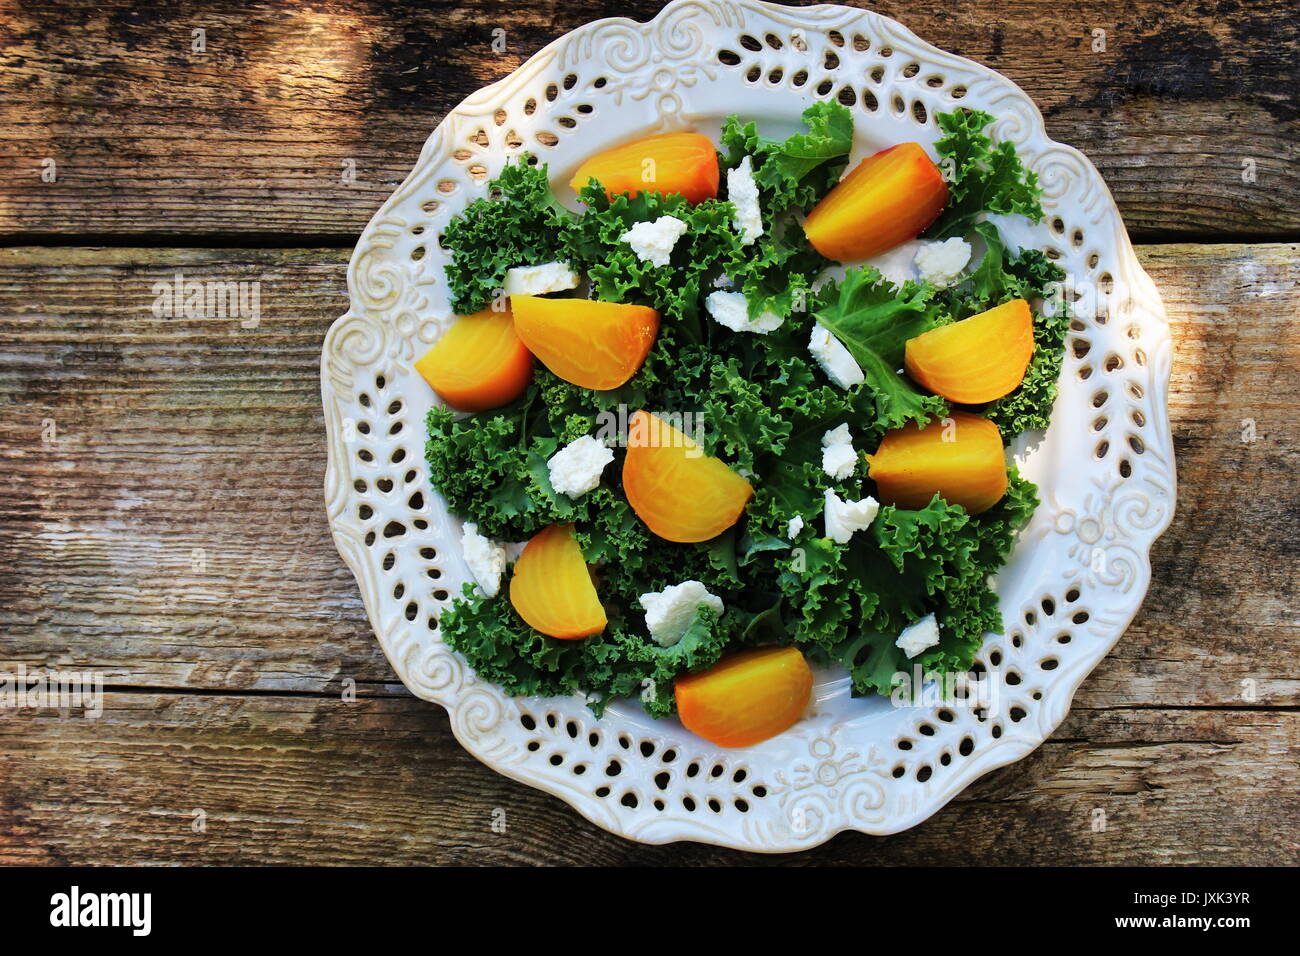 Healthy Beet Salad with fresh kale lettuce, nuts, feta cheese on wooden background - Stock Image